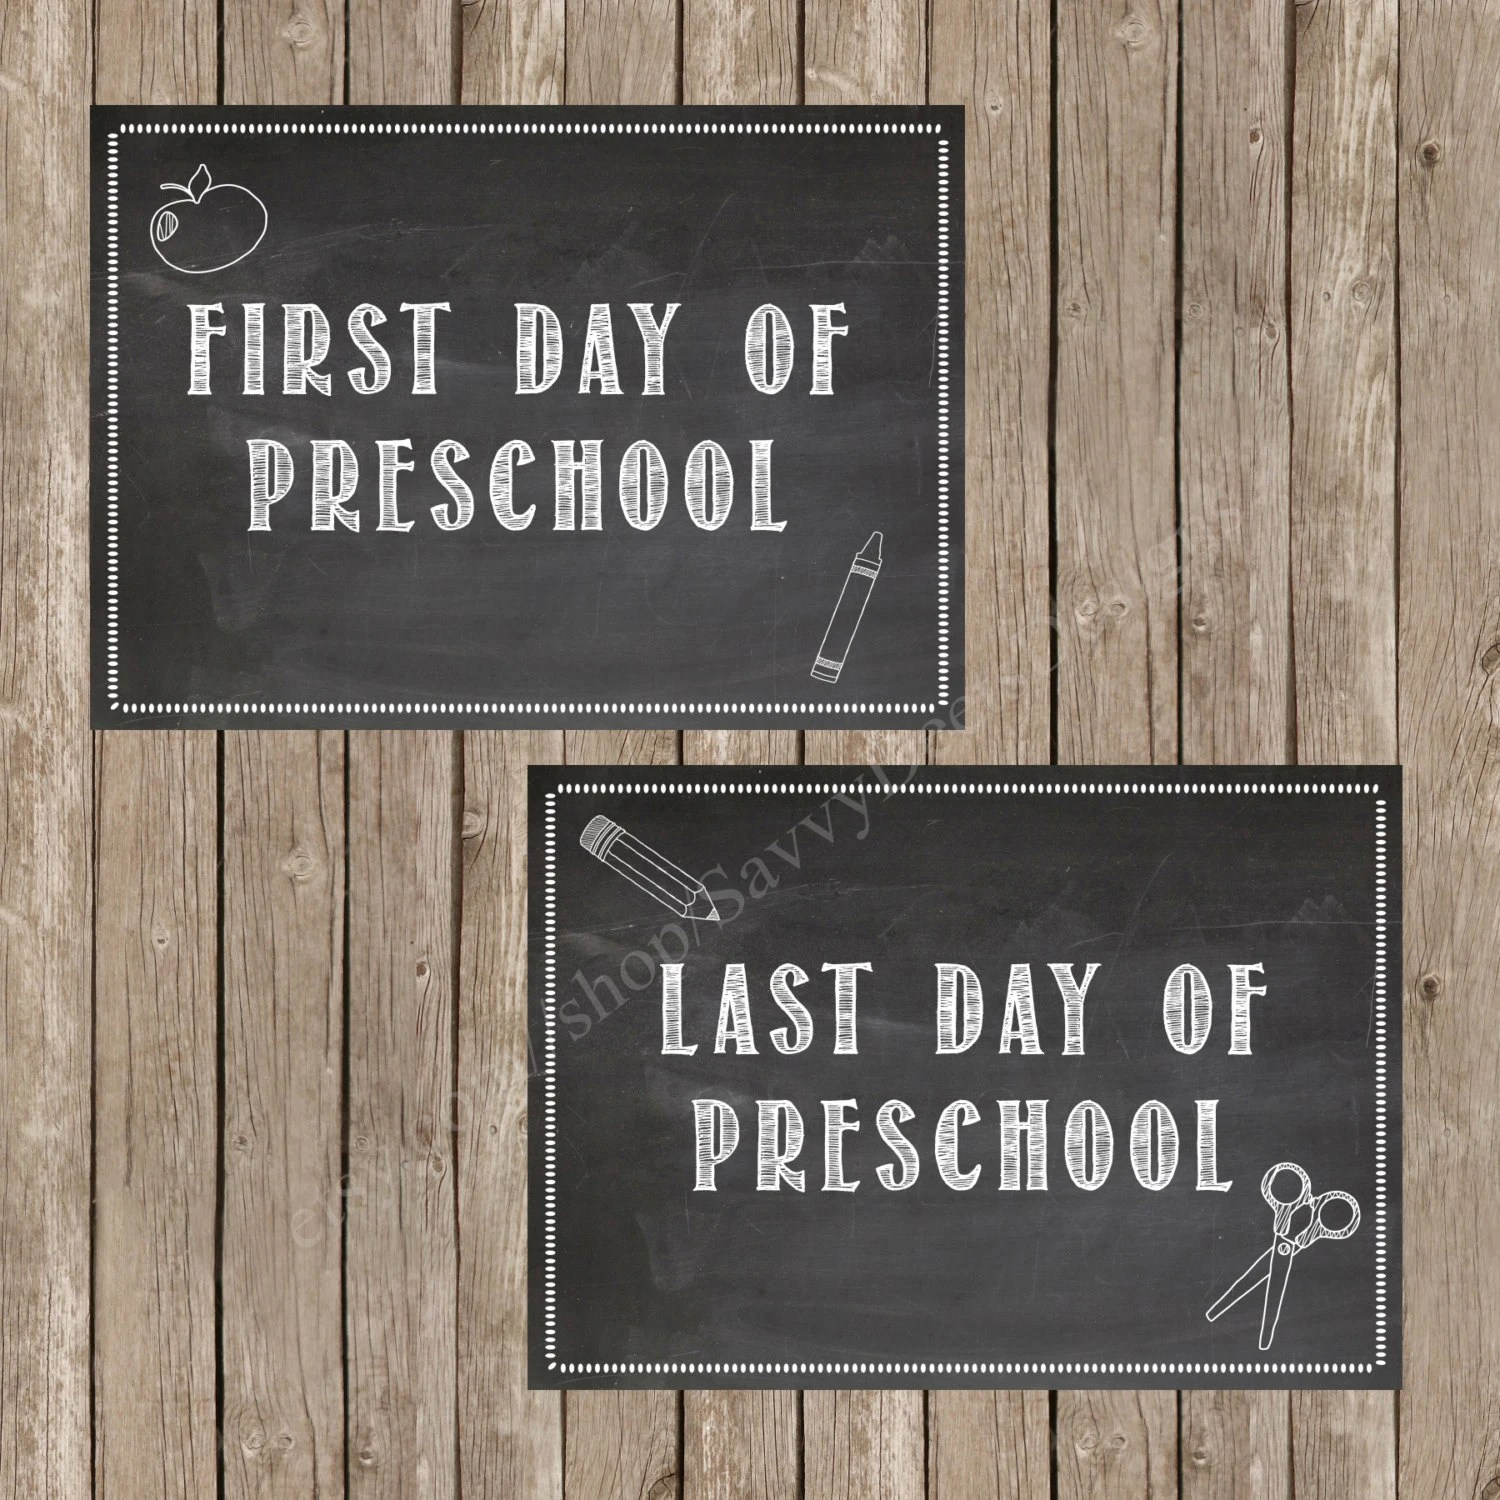 First Day Of Preschool Chalkboard Printable Last Day Of